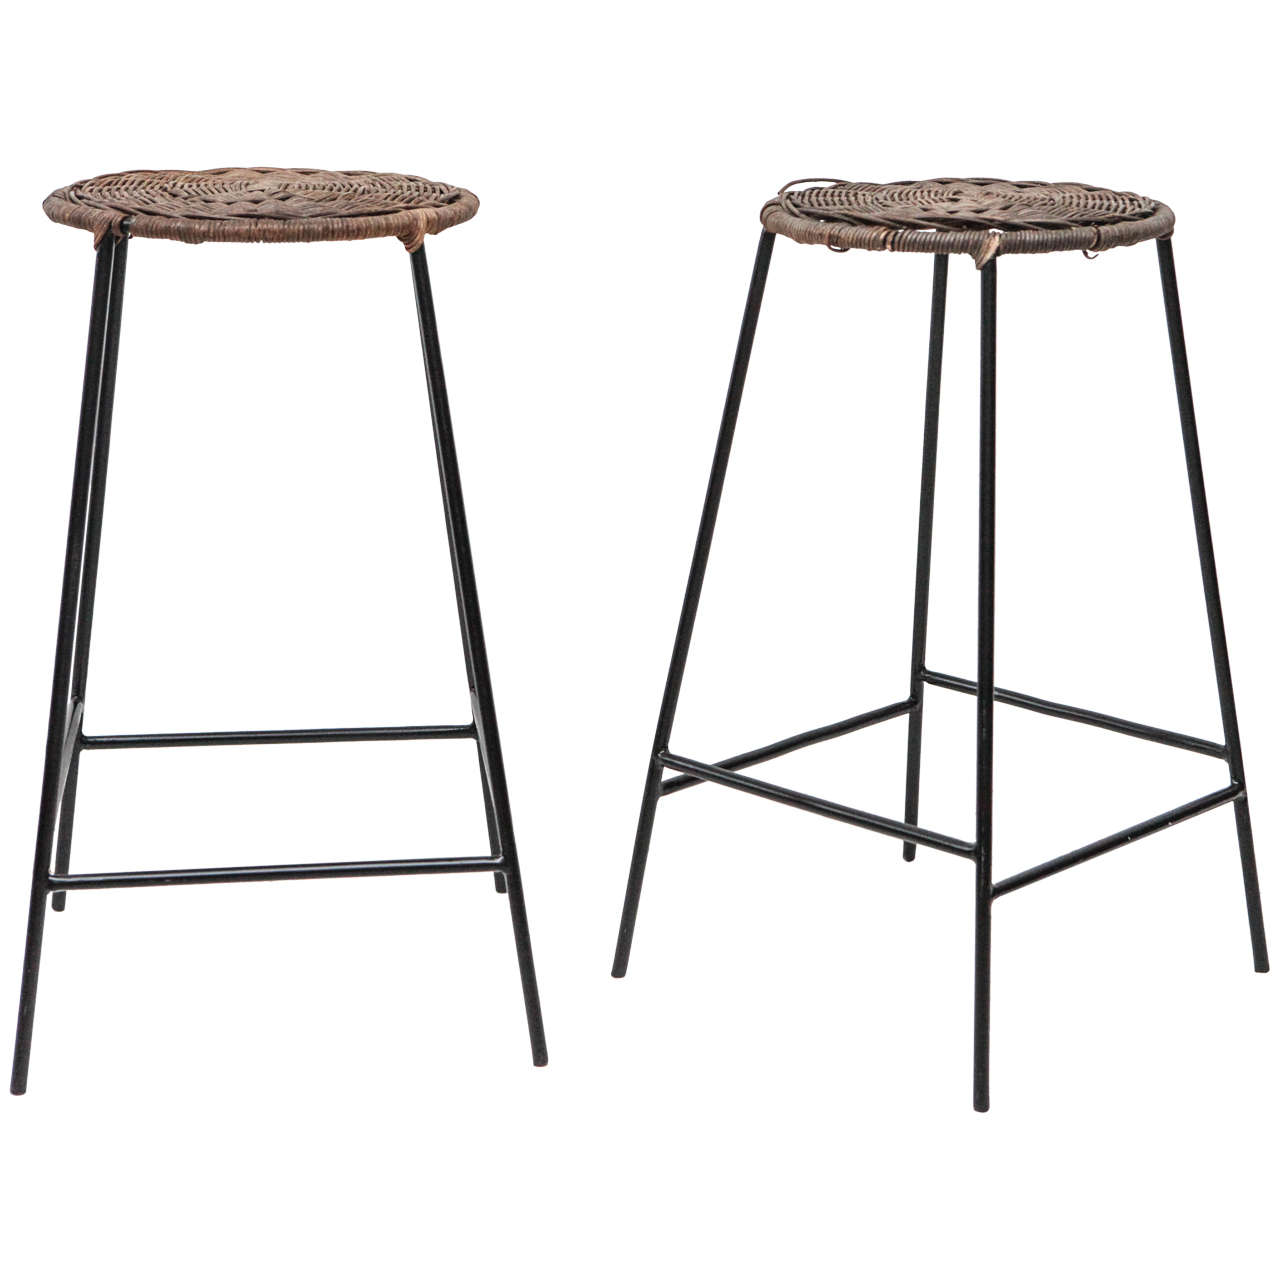 Arthur Umanoff Style Round Wicker Counter Stools At 1stdibs